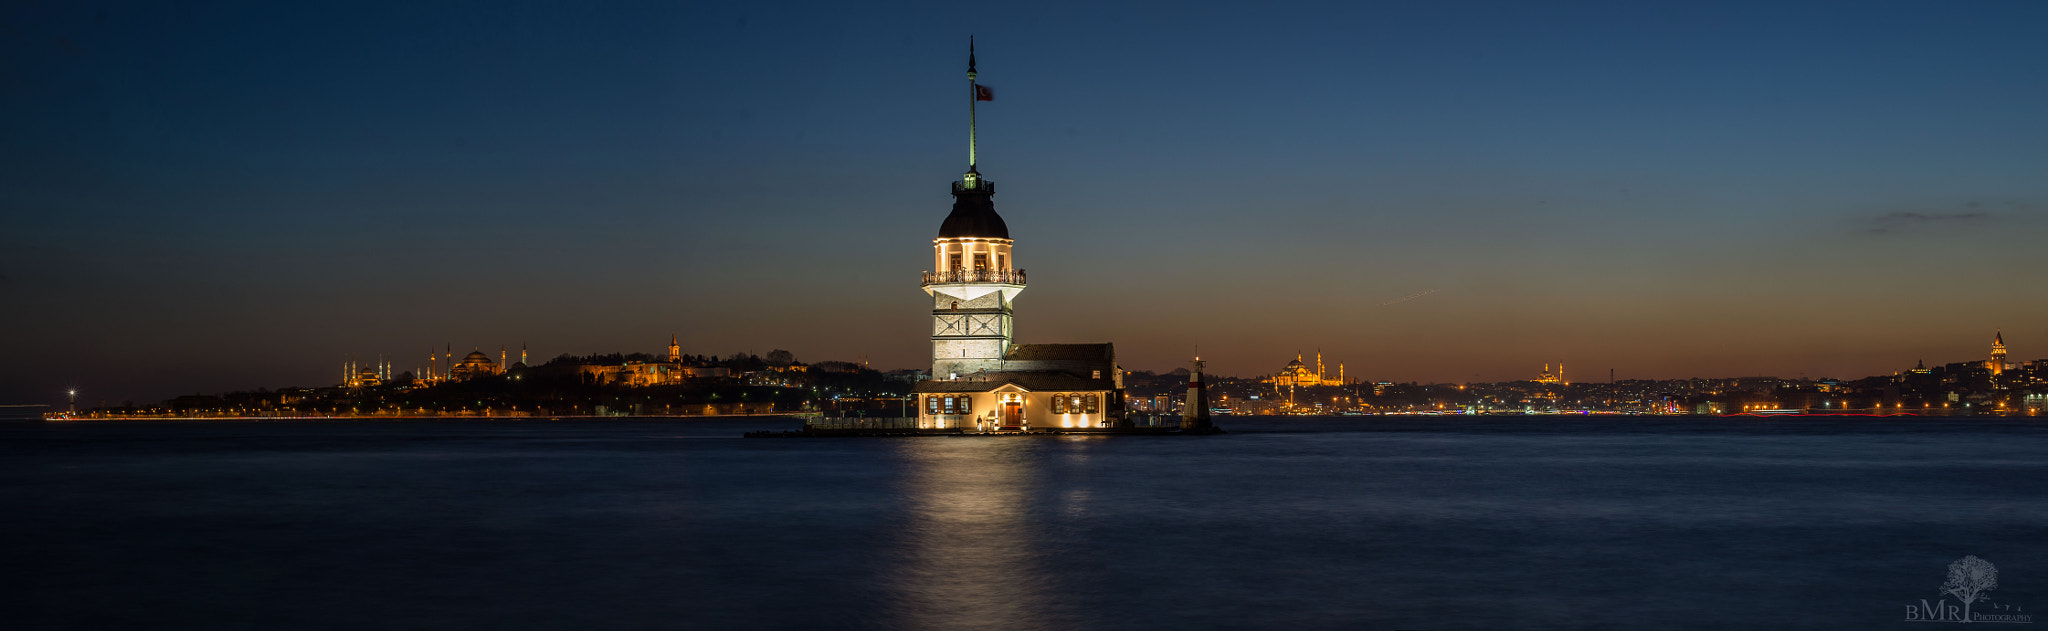 Photograph Maiden's Tower by Christian von Travelography on 500px